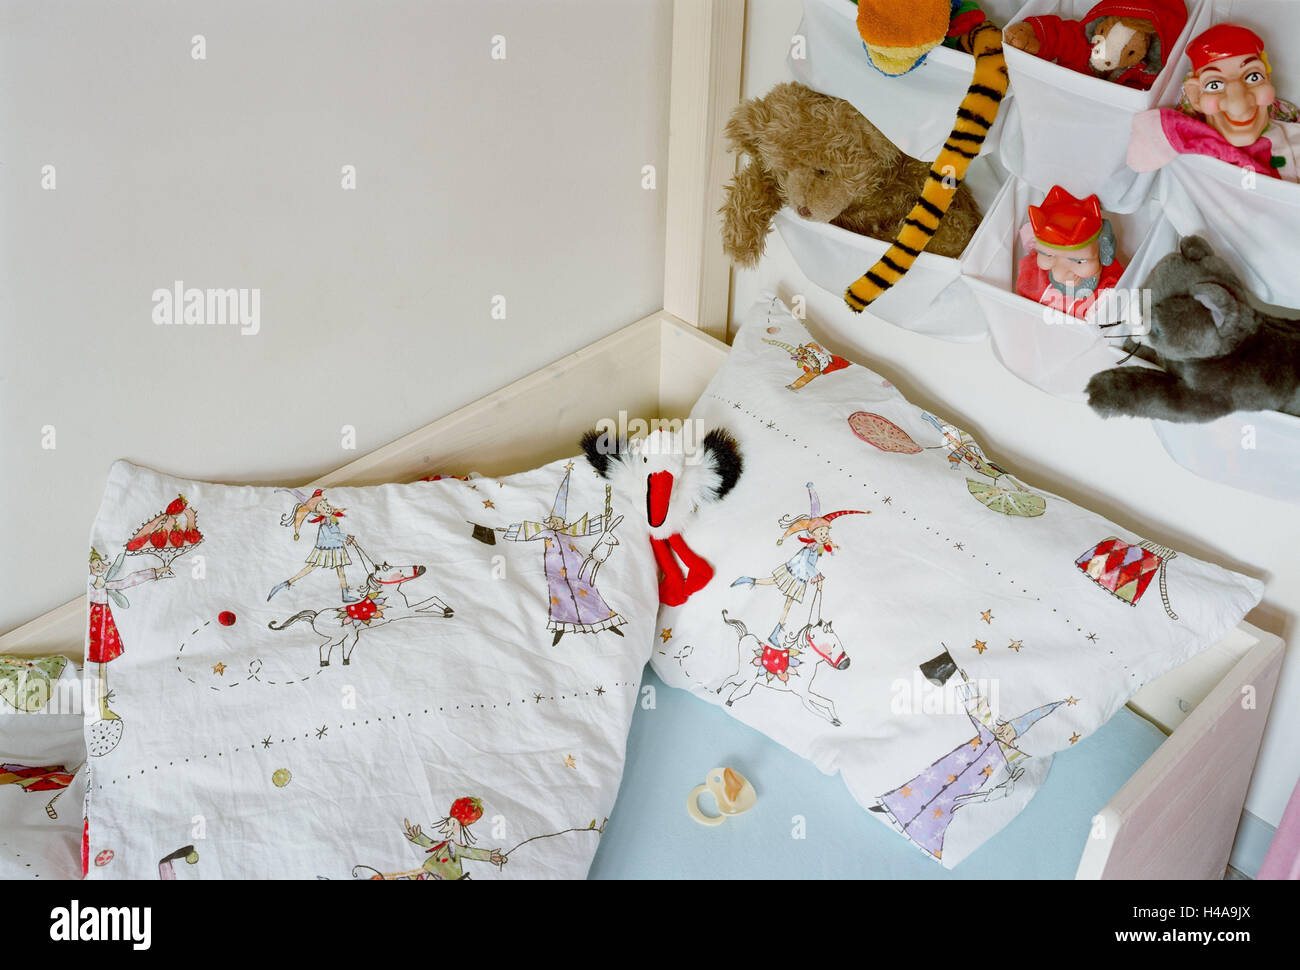 Children's rooms, bed, dummy, wall, little hanging eta, soft animals, rooms, child, cot, pillow, ceiling, wall, - Stock Image